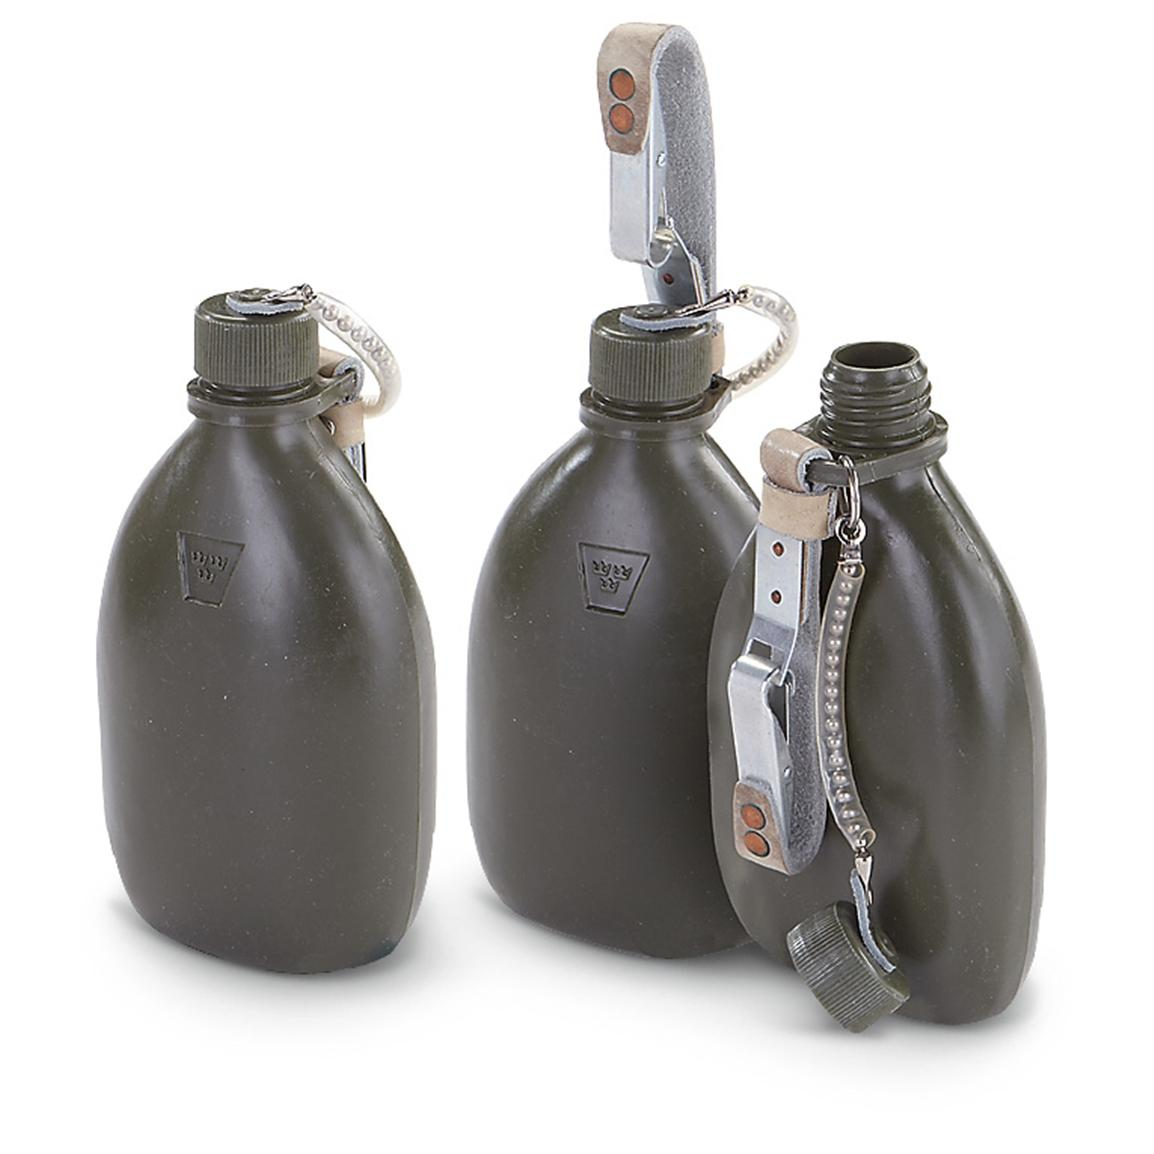 3 New Swedish Military Canteens, Olive Drab